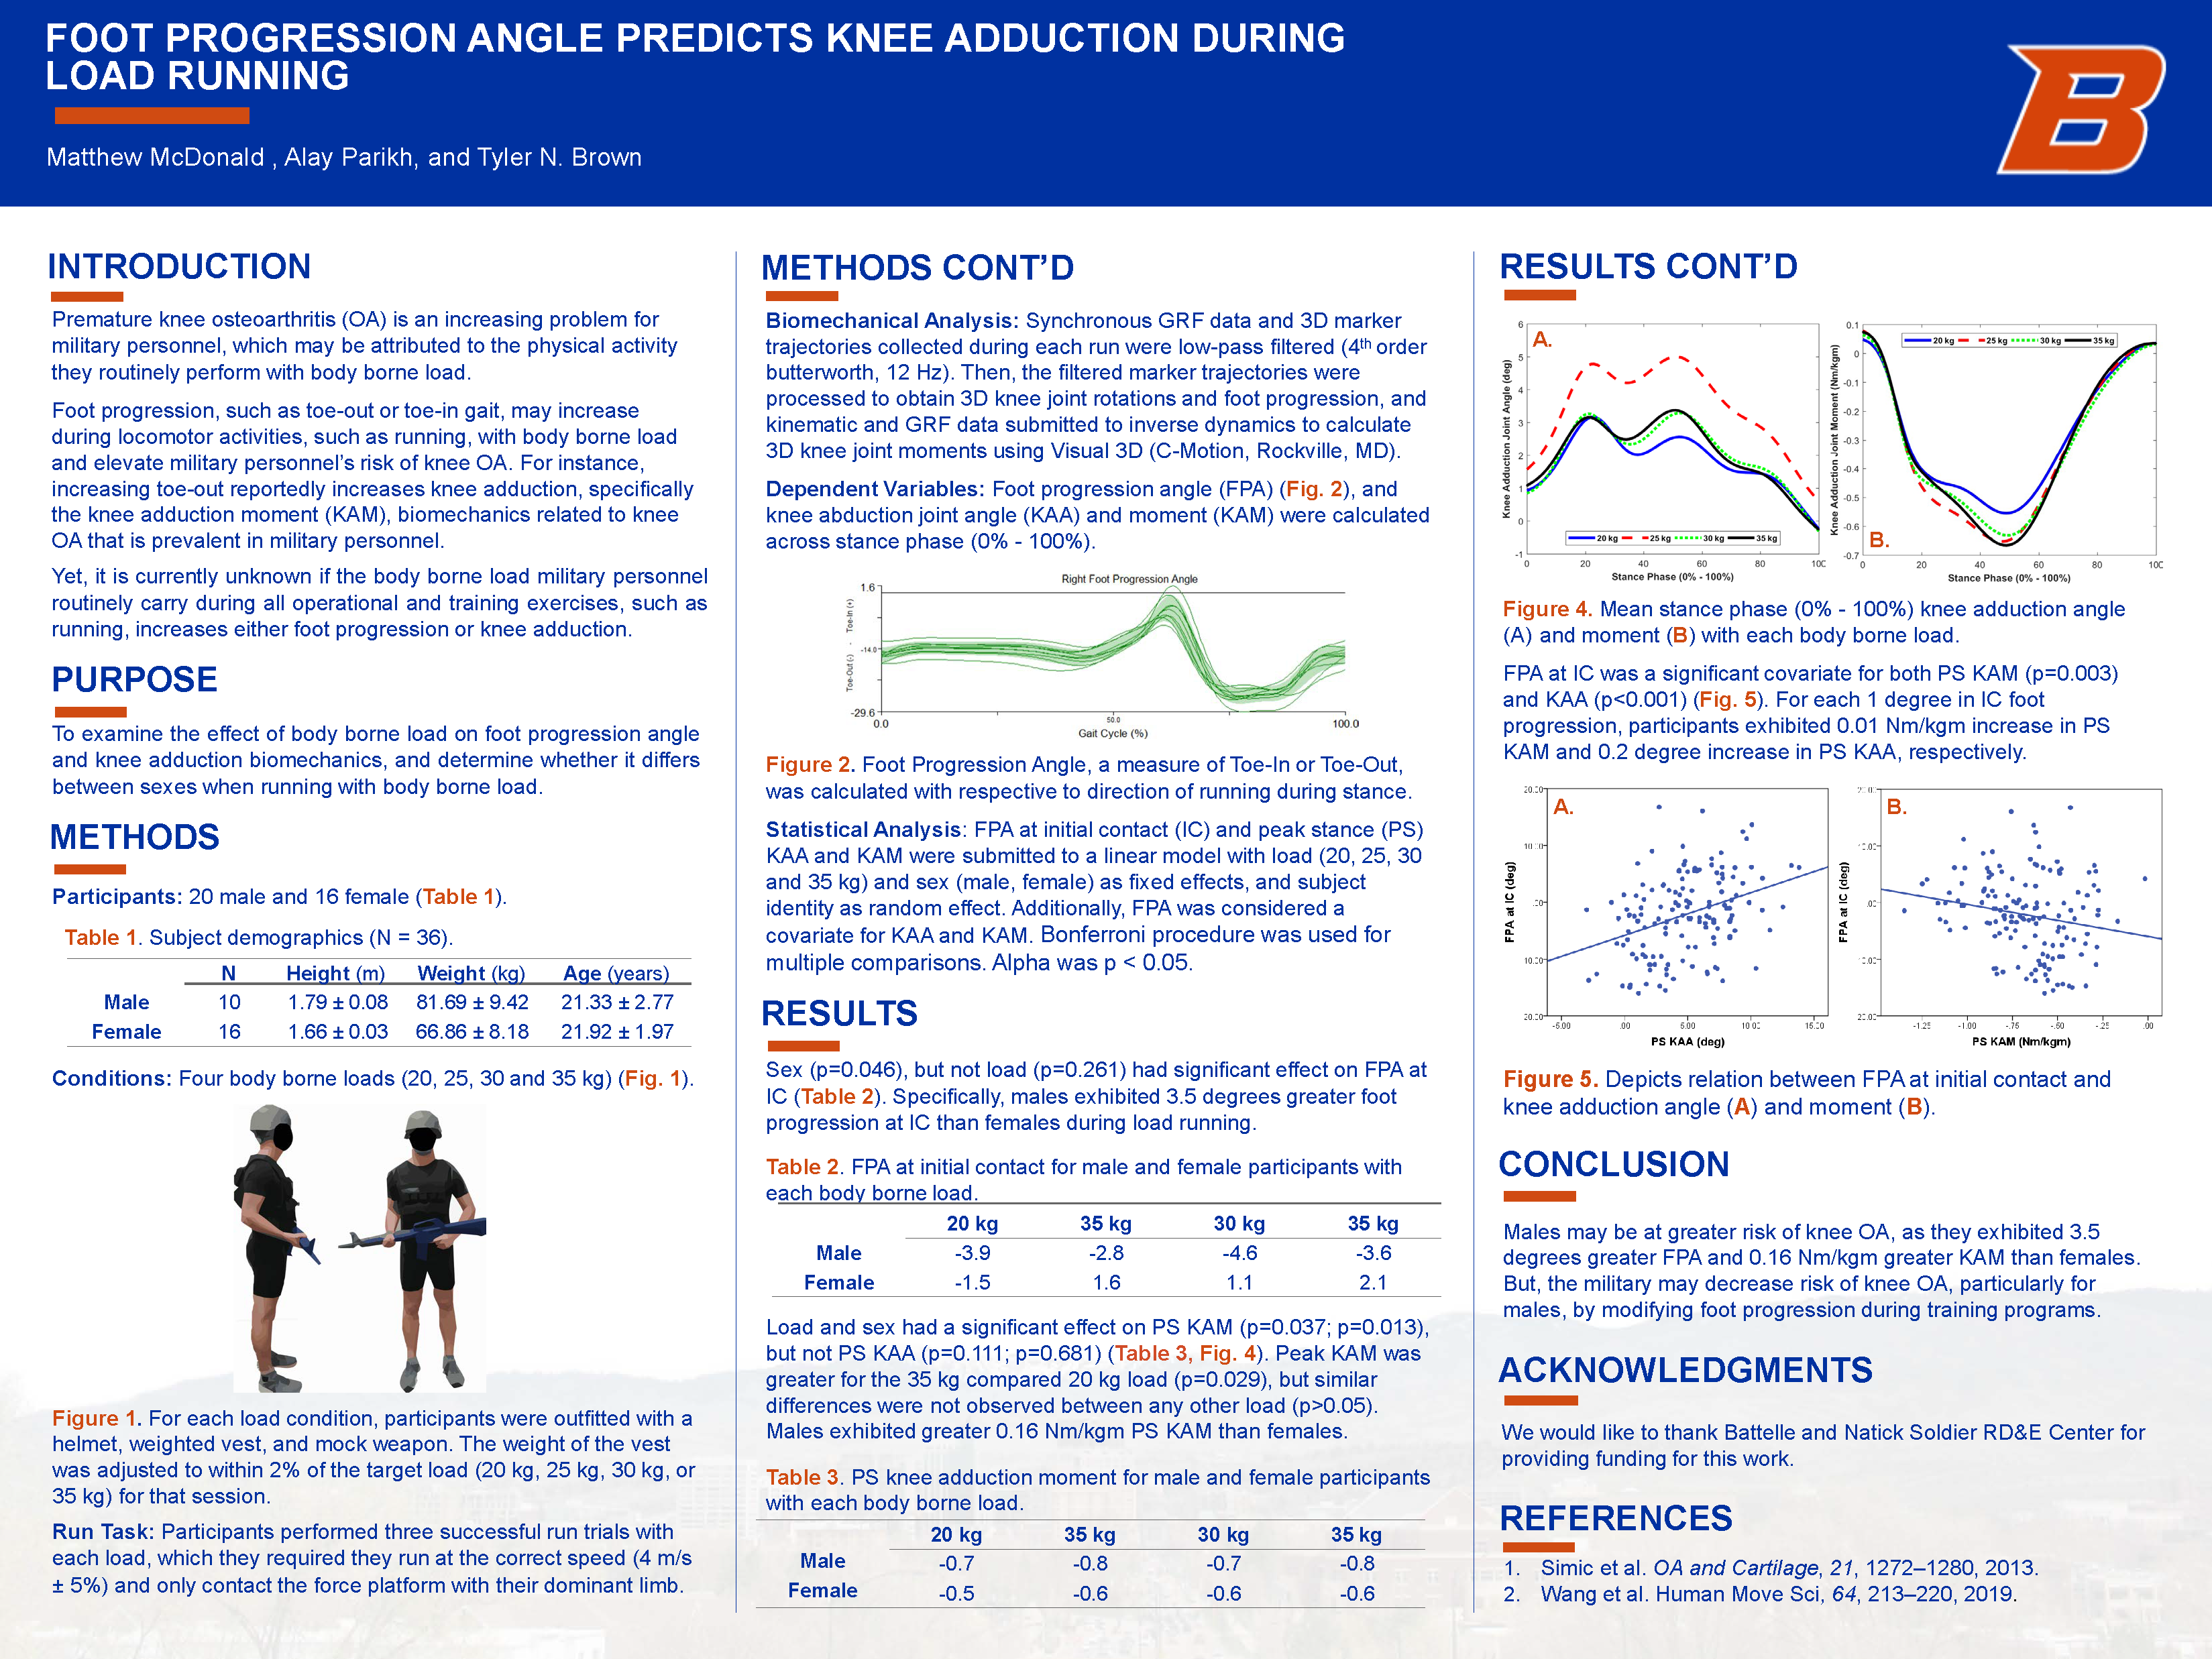 McDonald, Parikh, and Brown Final Poster - view poster content on post page